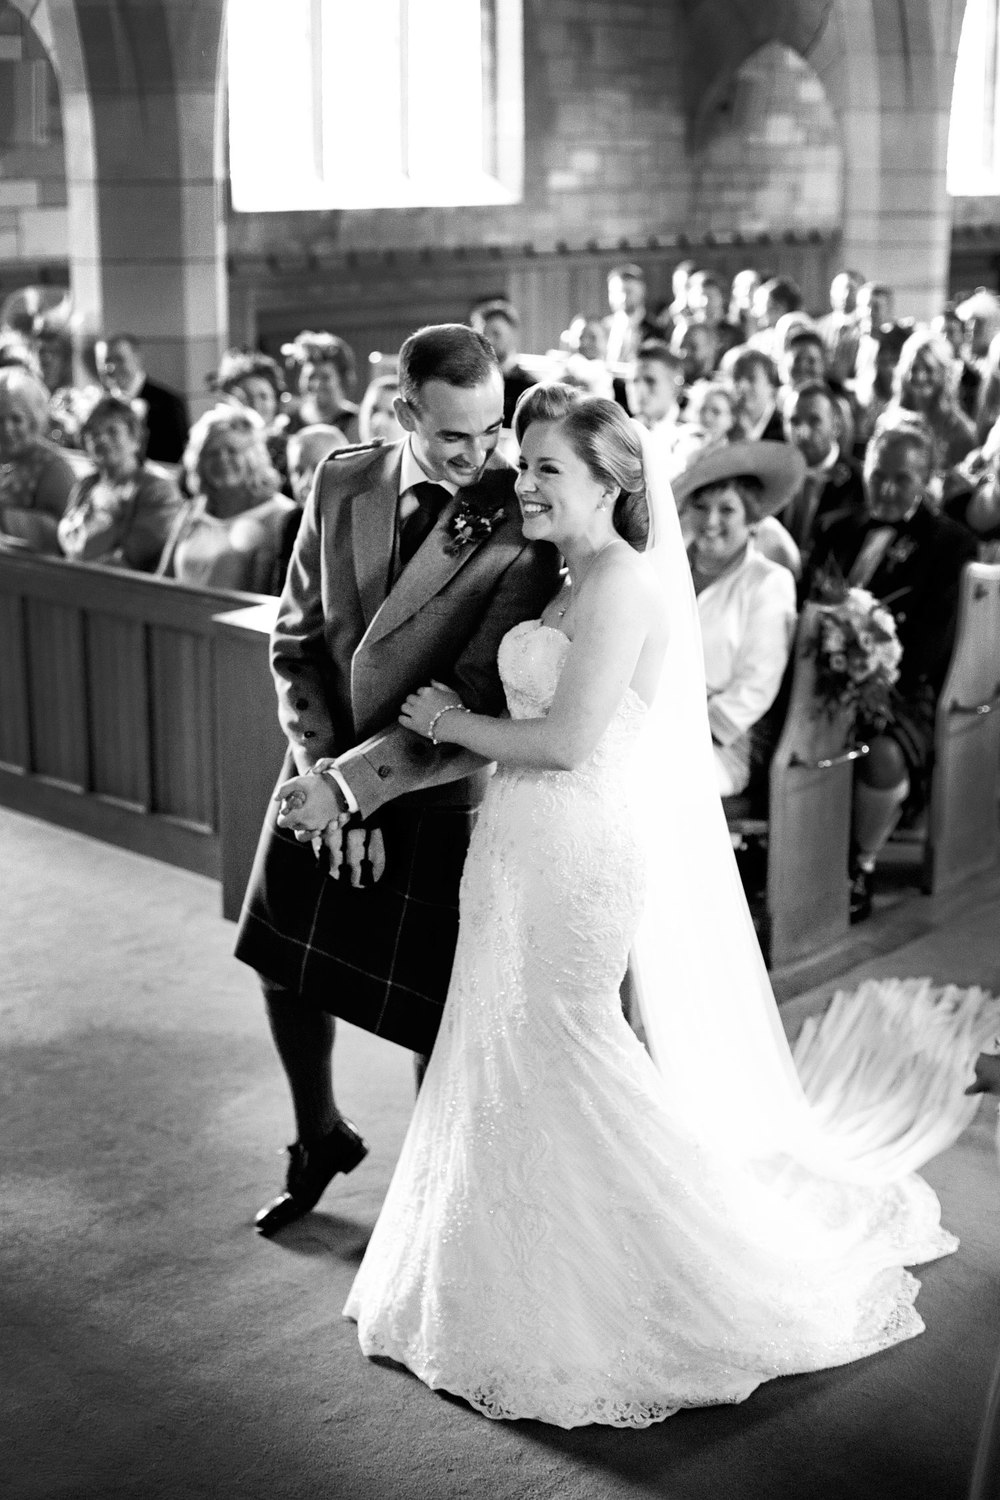 wedding ceremony, Scotland wedding photographer